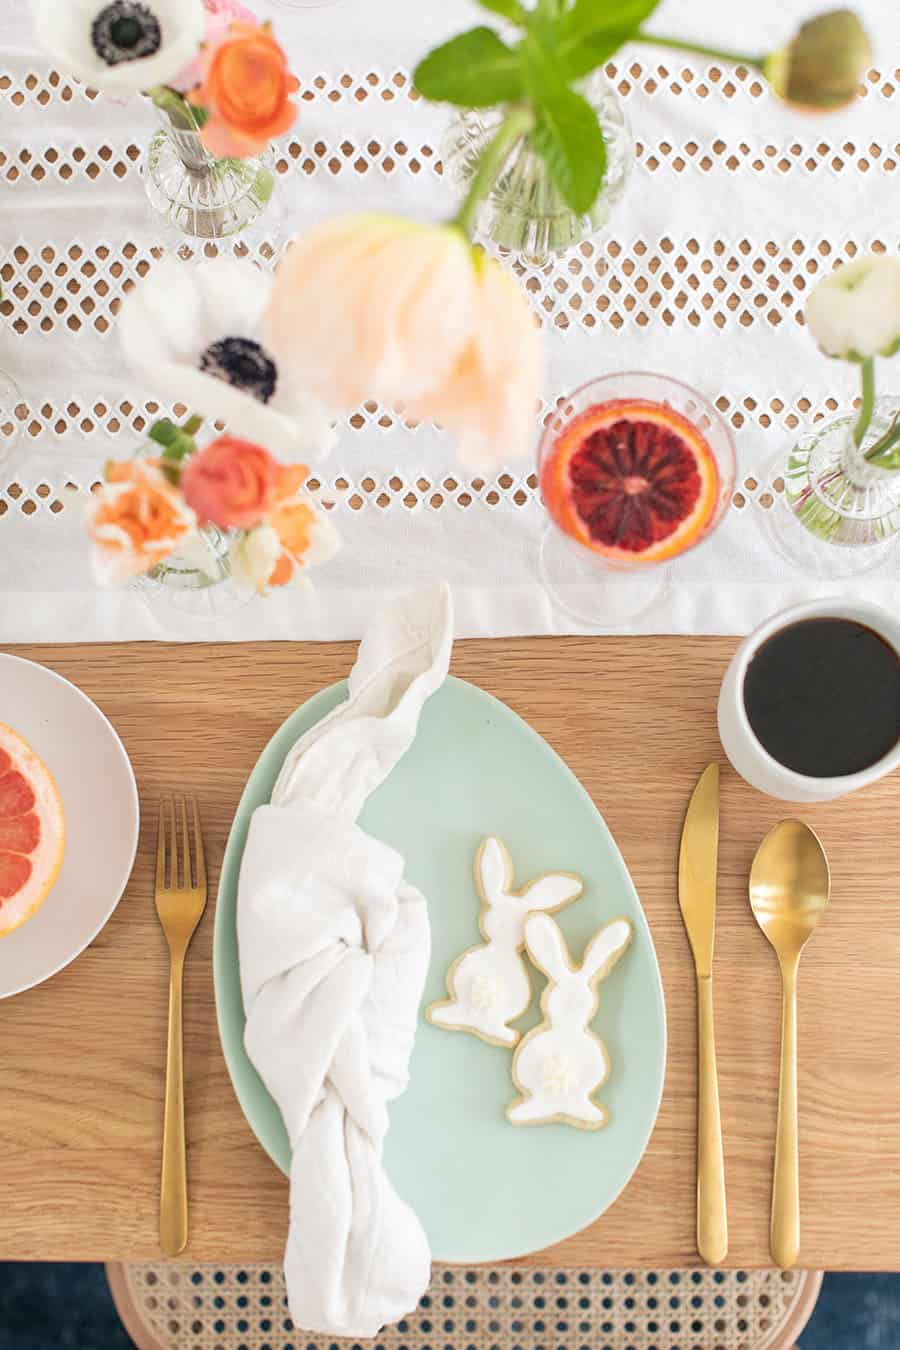 Classic and charming table setting for Easter brunch.